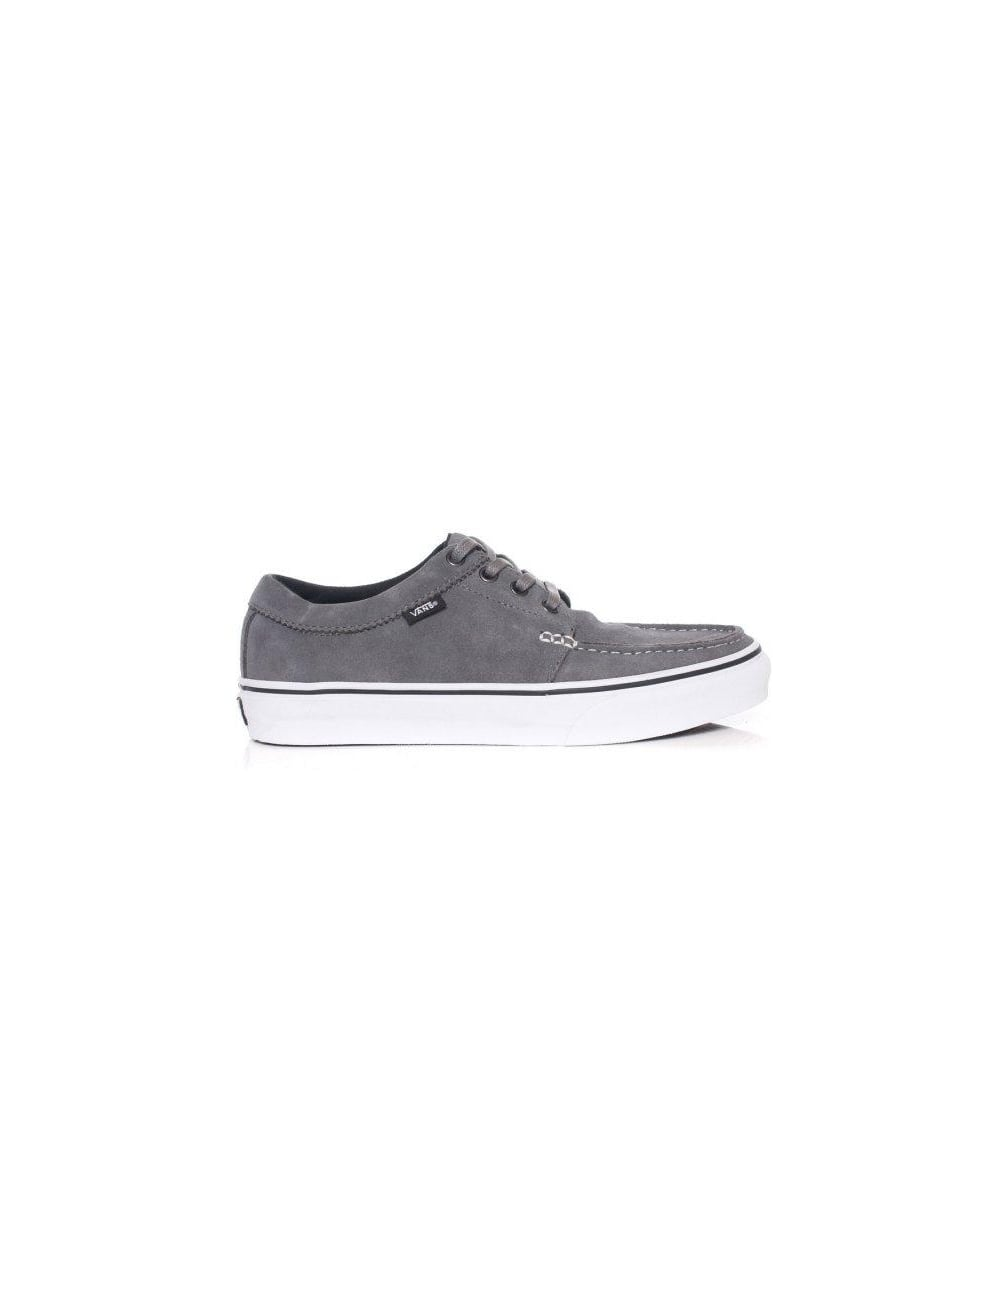 cf548a2ebc Vans Classics 106 Moc - Pewter (Suede) - Footwear from Fat Buddha ...